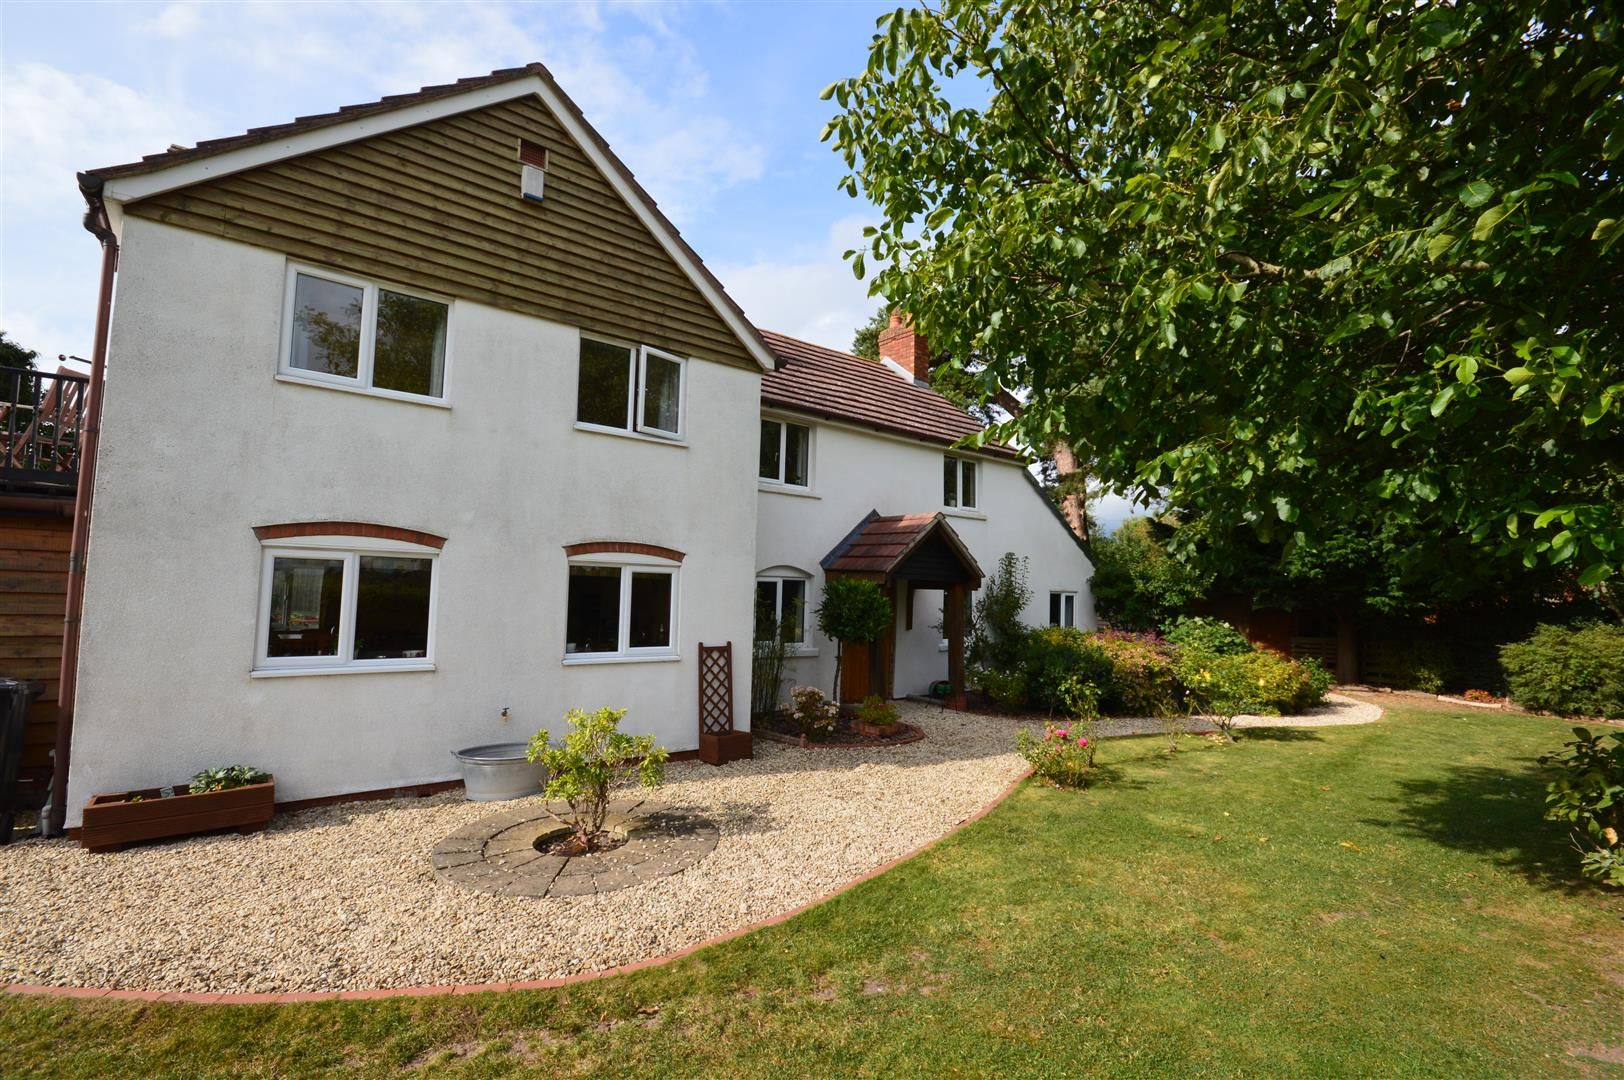 4 bed detached for sale in Cross Keys, HR1